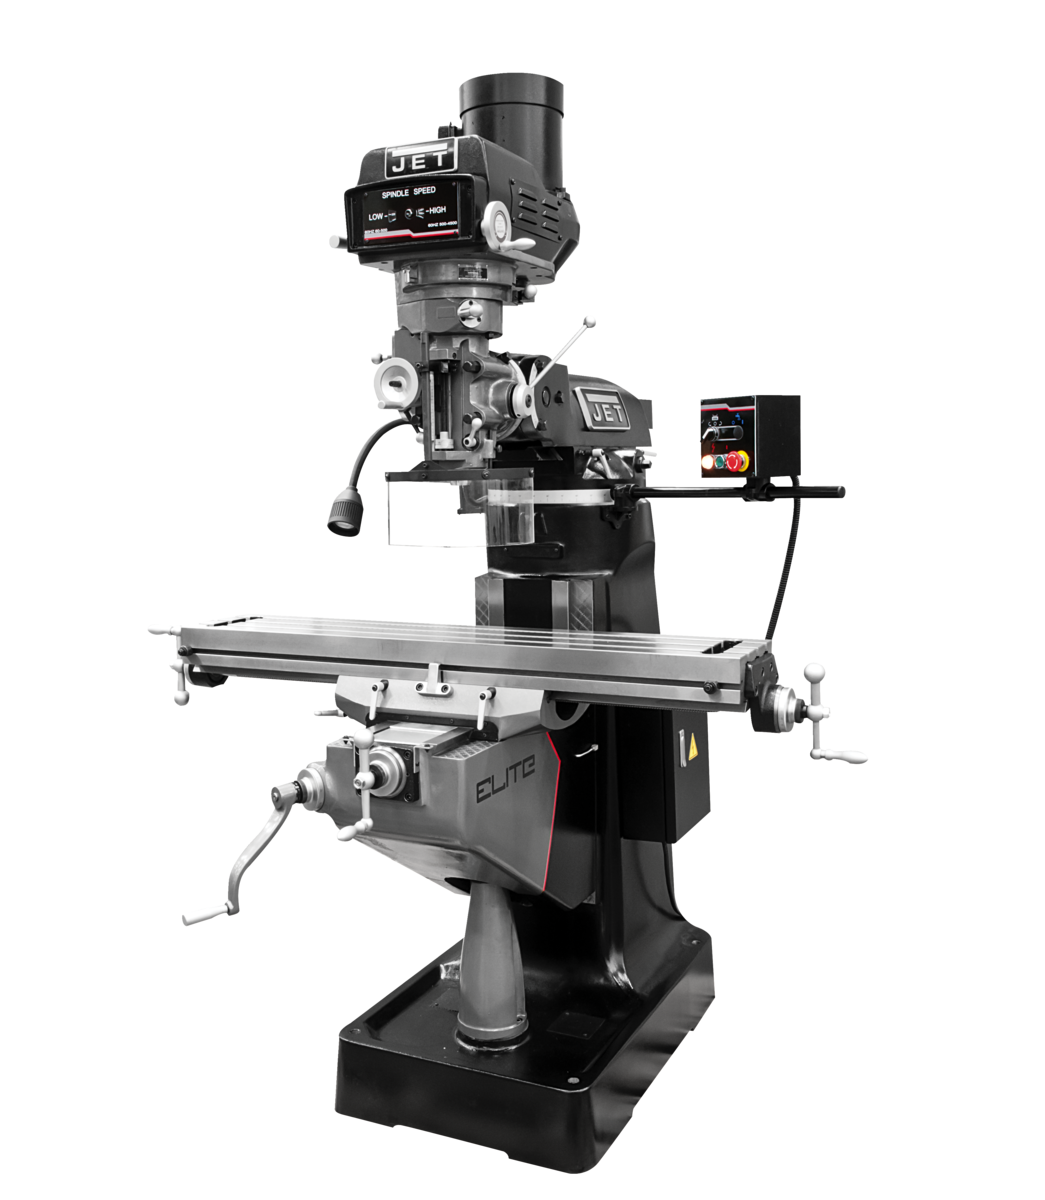 ETM-949 Mill with 3-Axis ACU-RITE 303  (Knee) DRO and X-Axis JET Powerfeed and USA MadeAir Draw Bar